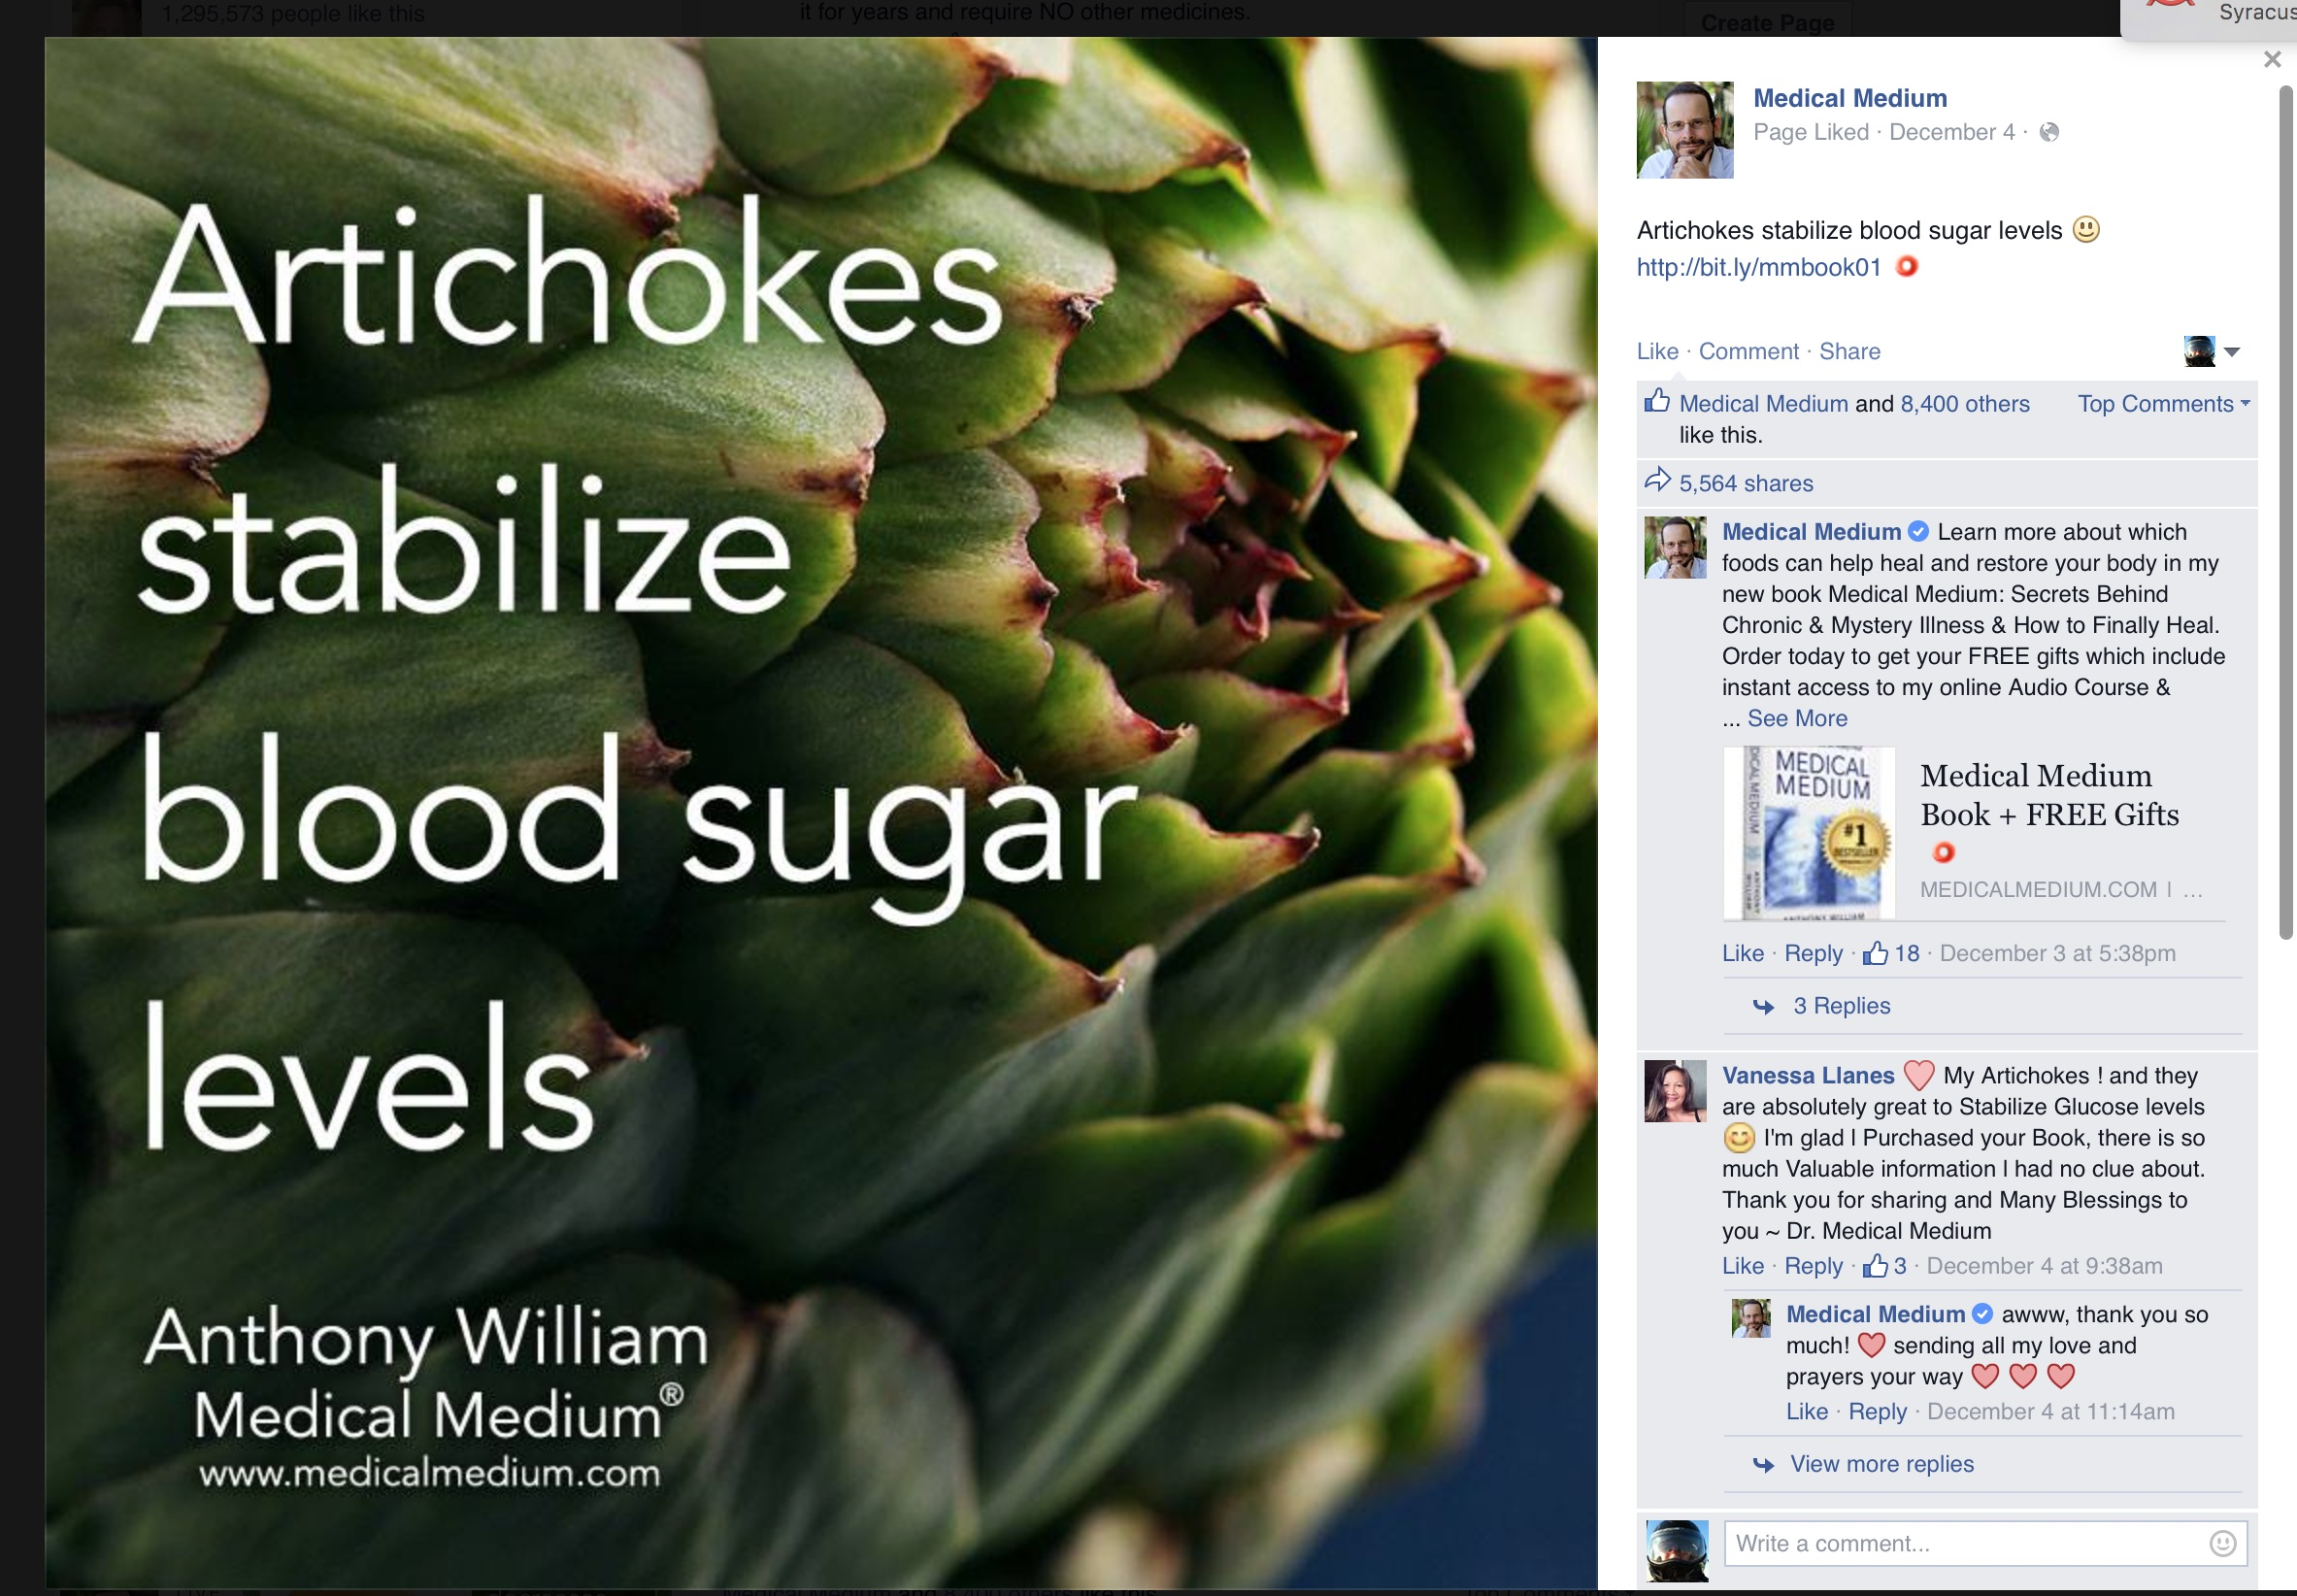 Anthony williams medical medium bad reviews - The Medical Medium Claims That Artichokes Stabilize Blood Sugar An Important Issue For Diabetics Sure Choosing The Right Foods Can Help Maintain A Proper